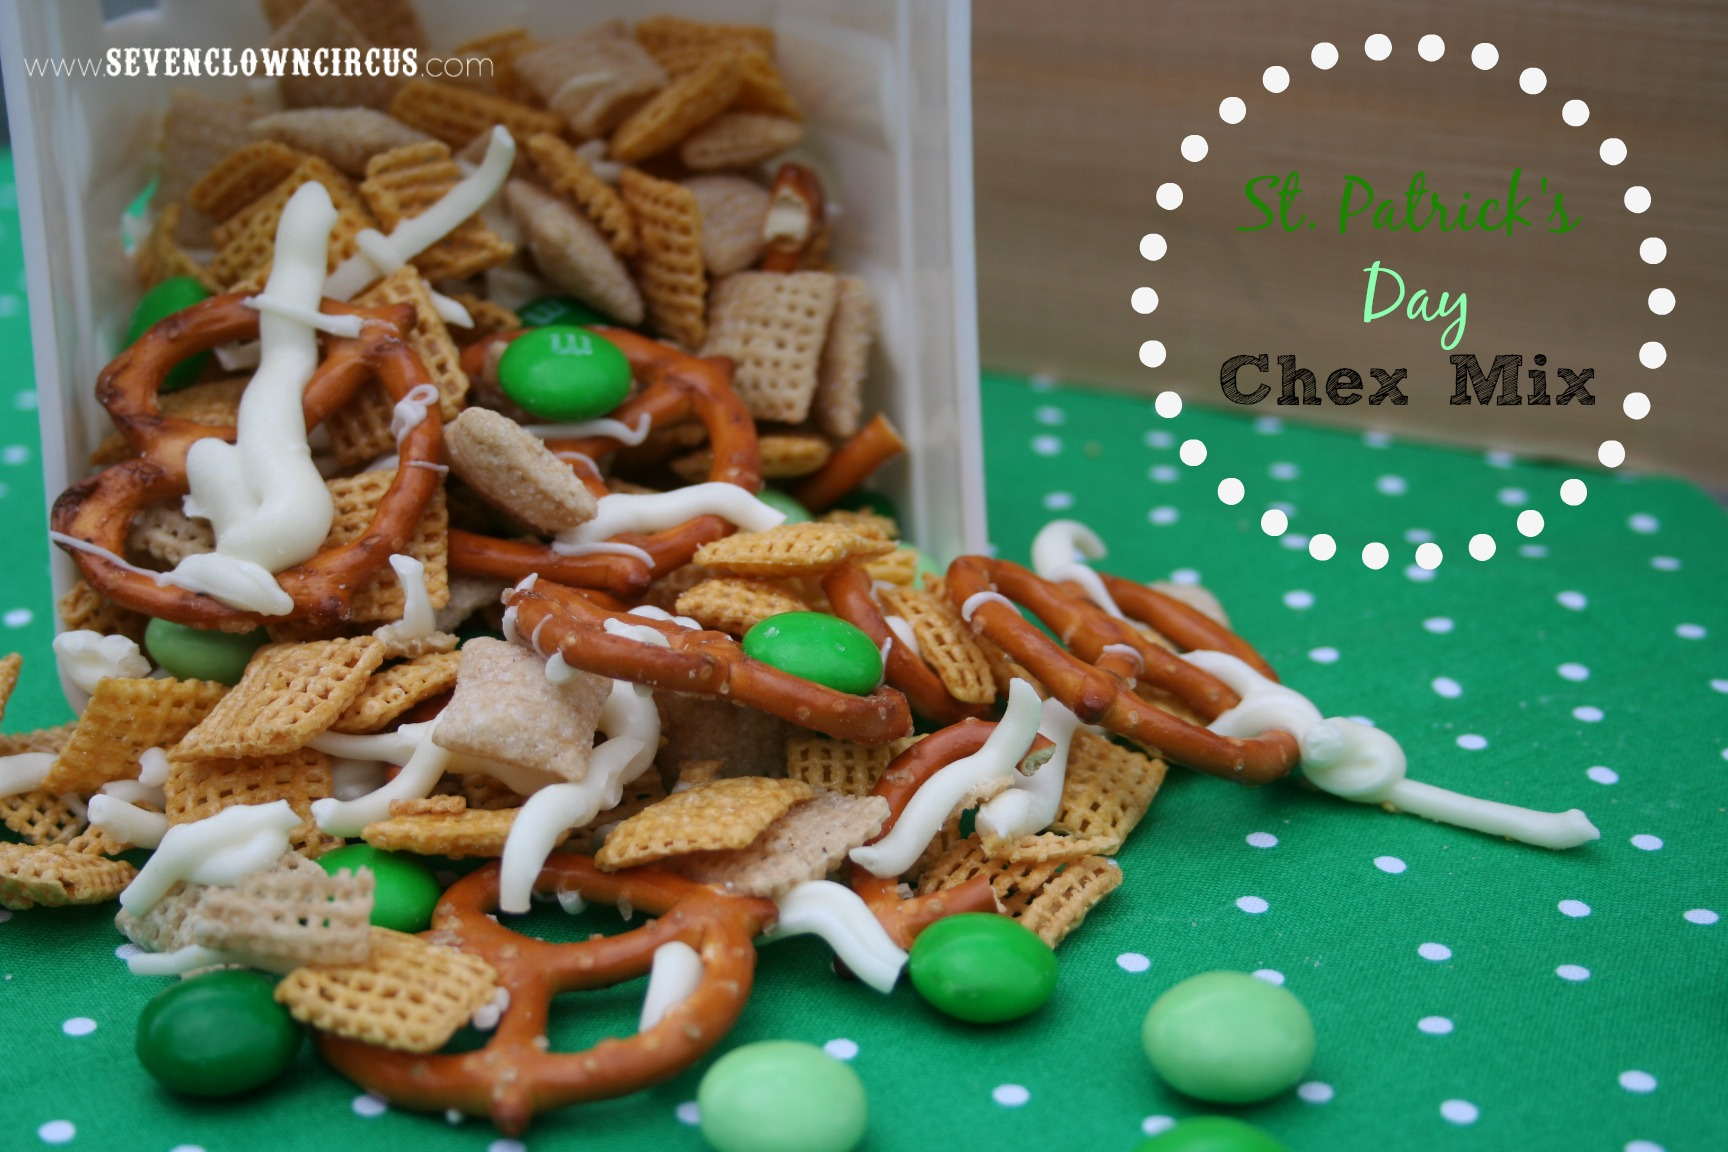 St. Patrick's Day Chex Mix